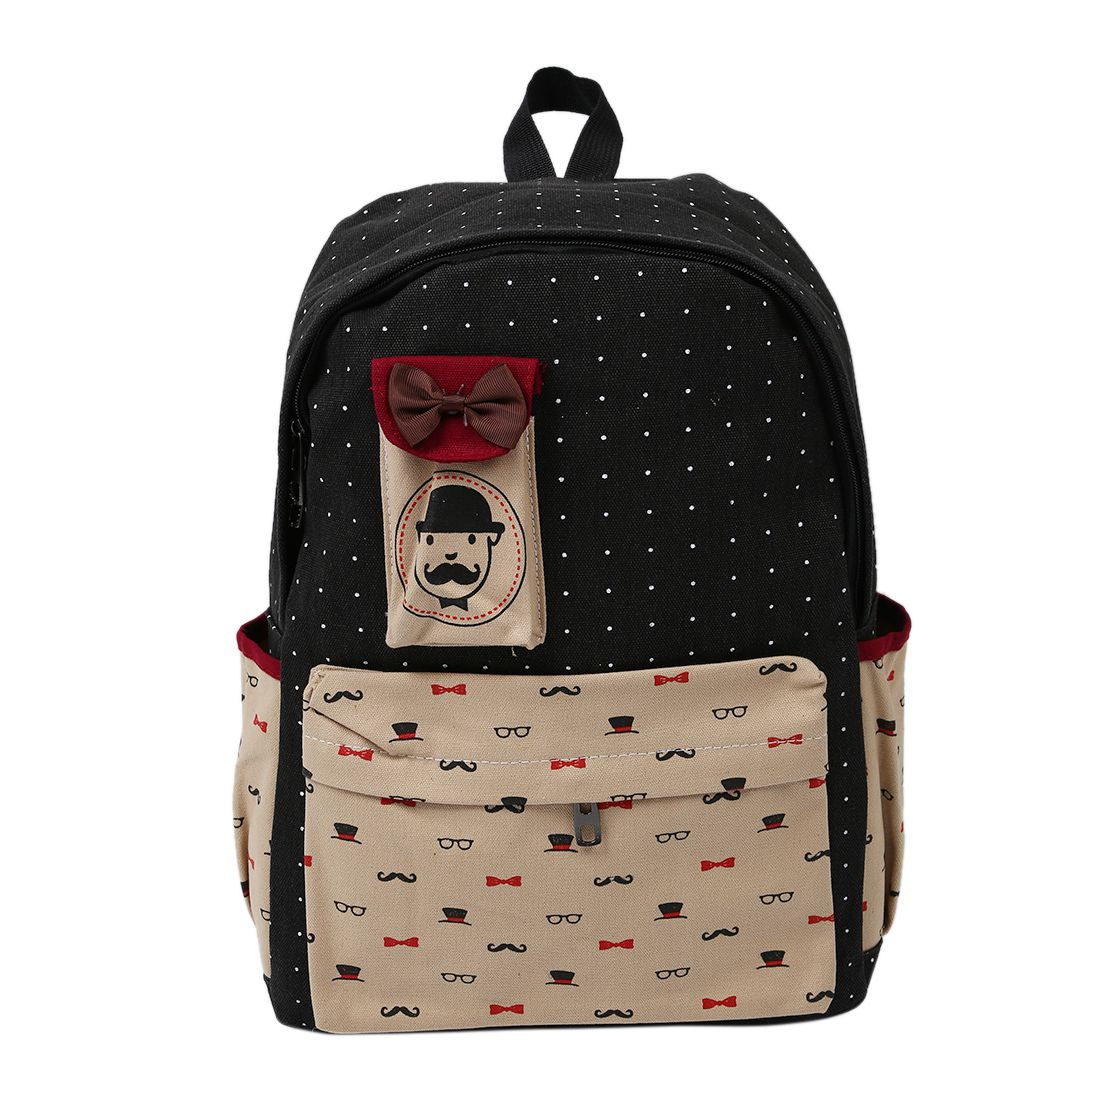 Fashion Lovely Cartoon Pattern Canvas Travel Bag Girl s Dots Backpack Black and Beige Patchwork Leisure